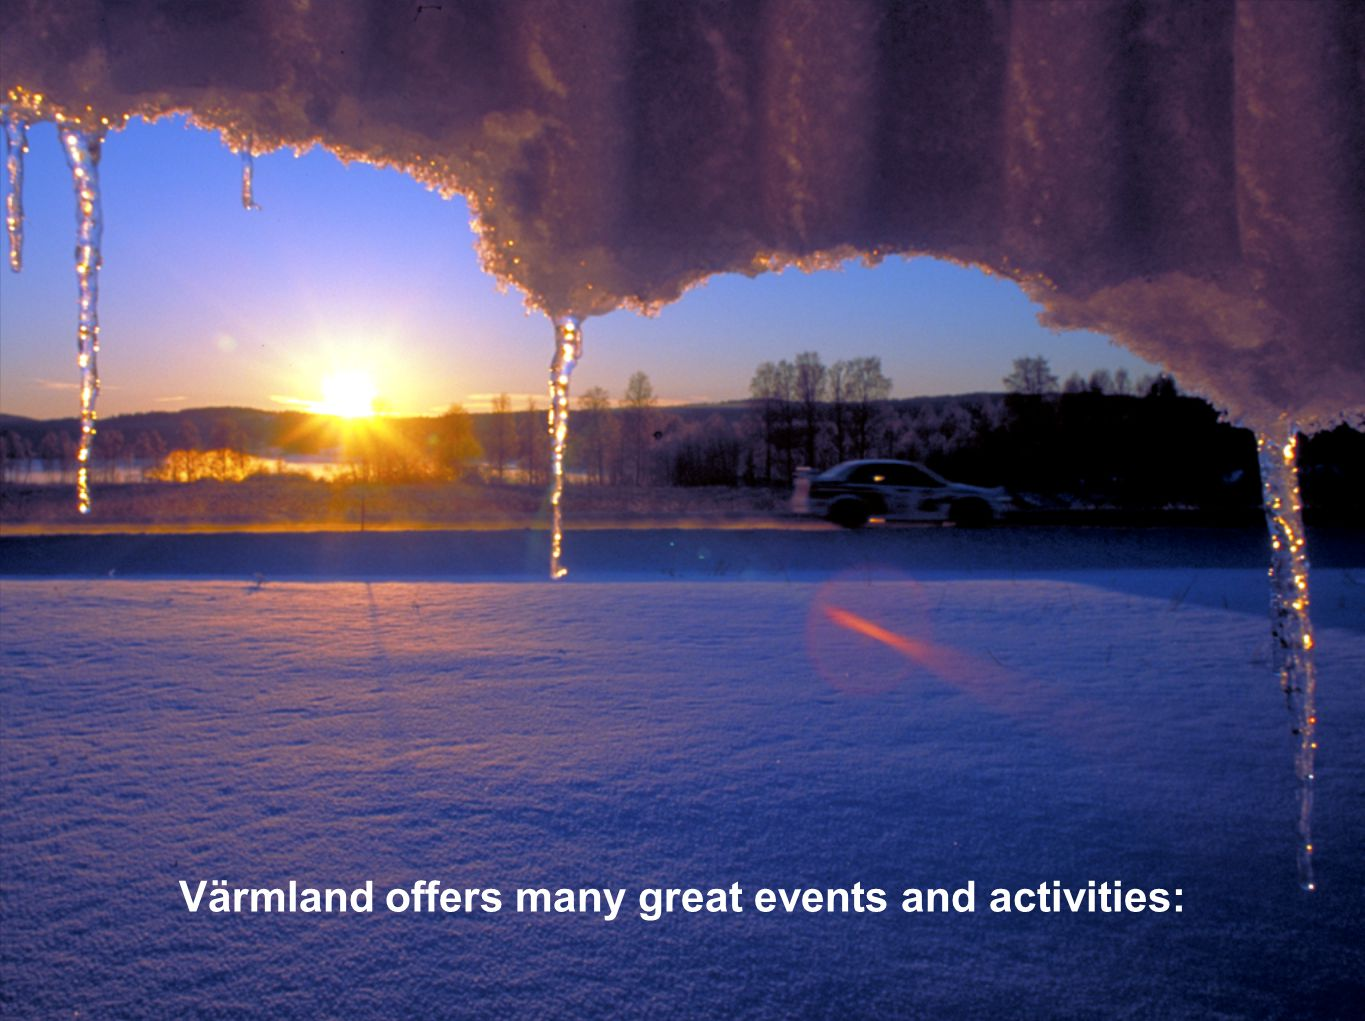 Värmland offers many great events and activities: